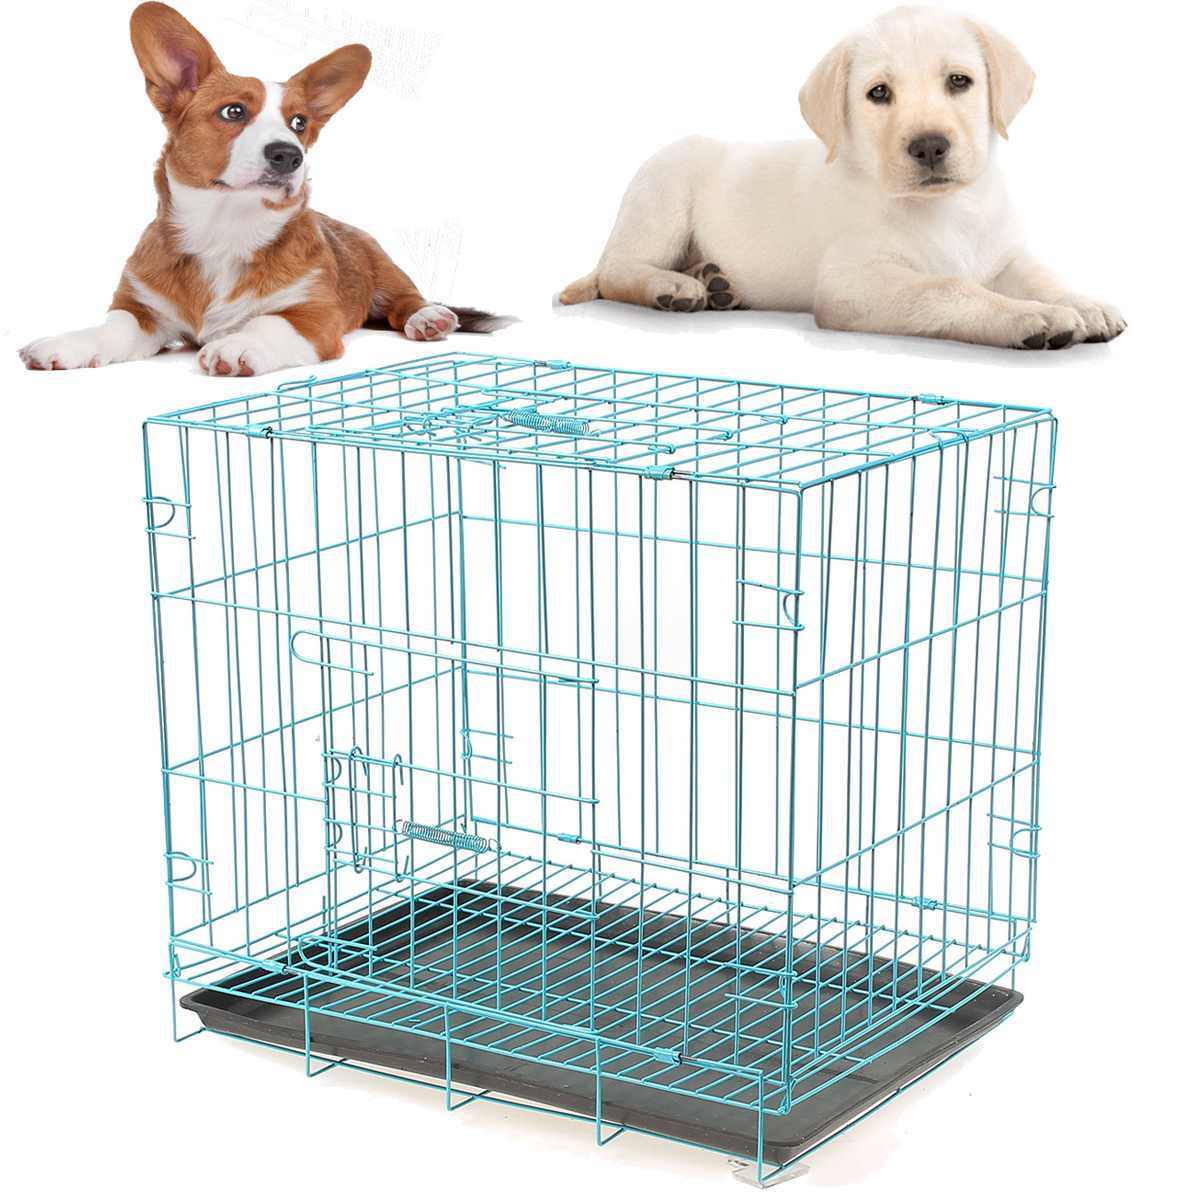 Portable Foldable Playpen Pet Dog Crate Room Puppy Kennel Cage For Cats Dogs Pet HousePortable Foldable Playpen Pet Dog Crate Room Puppy Kennel Cage For Cats Dogs Pet House